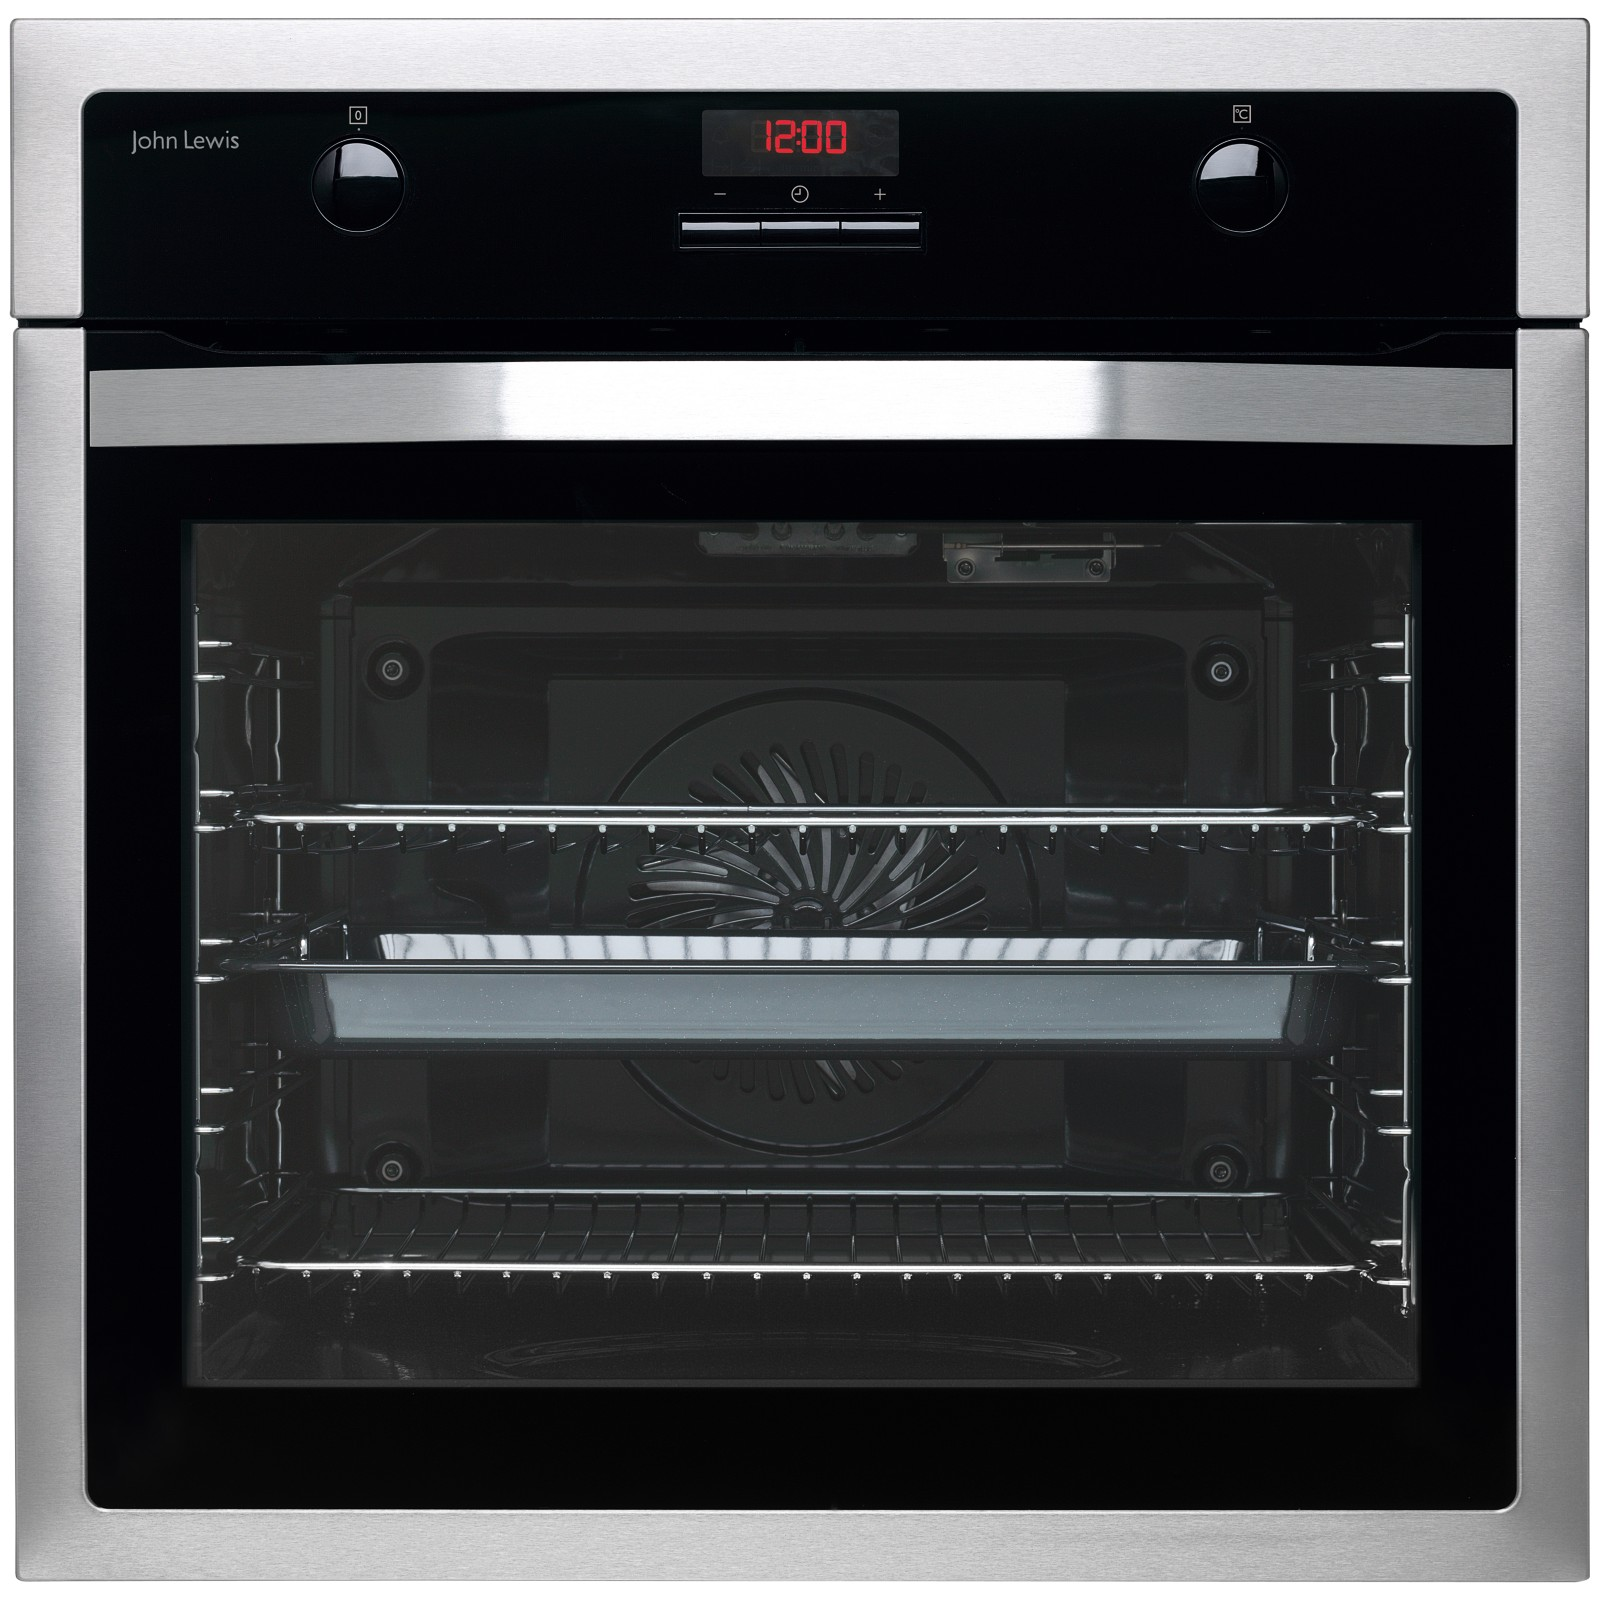 john lewis jlbios615 single oven stainless steel review. Black Bedroom Furniture Sets. Home Design Ideas